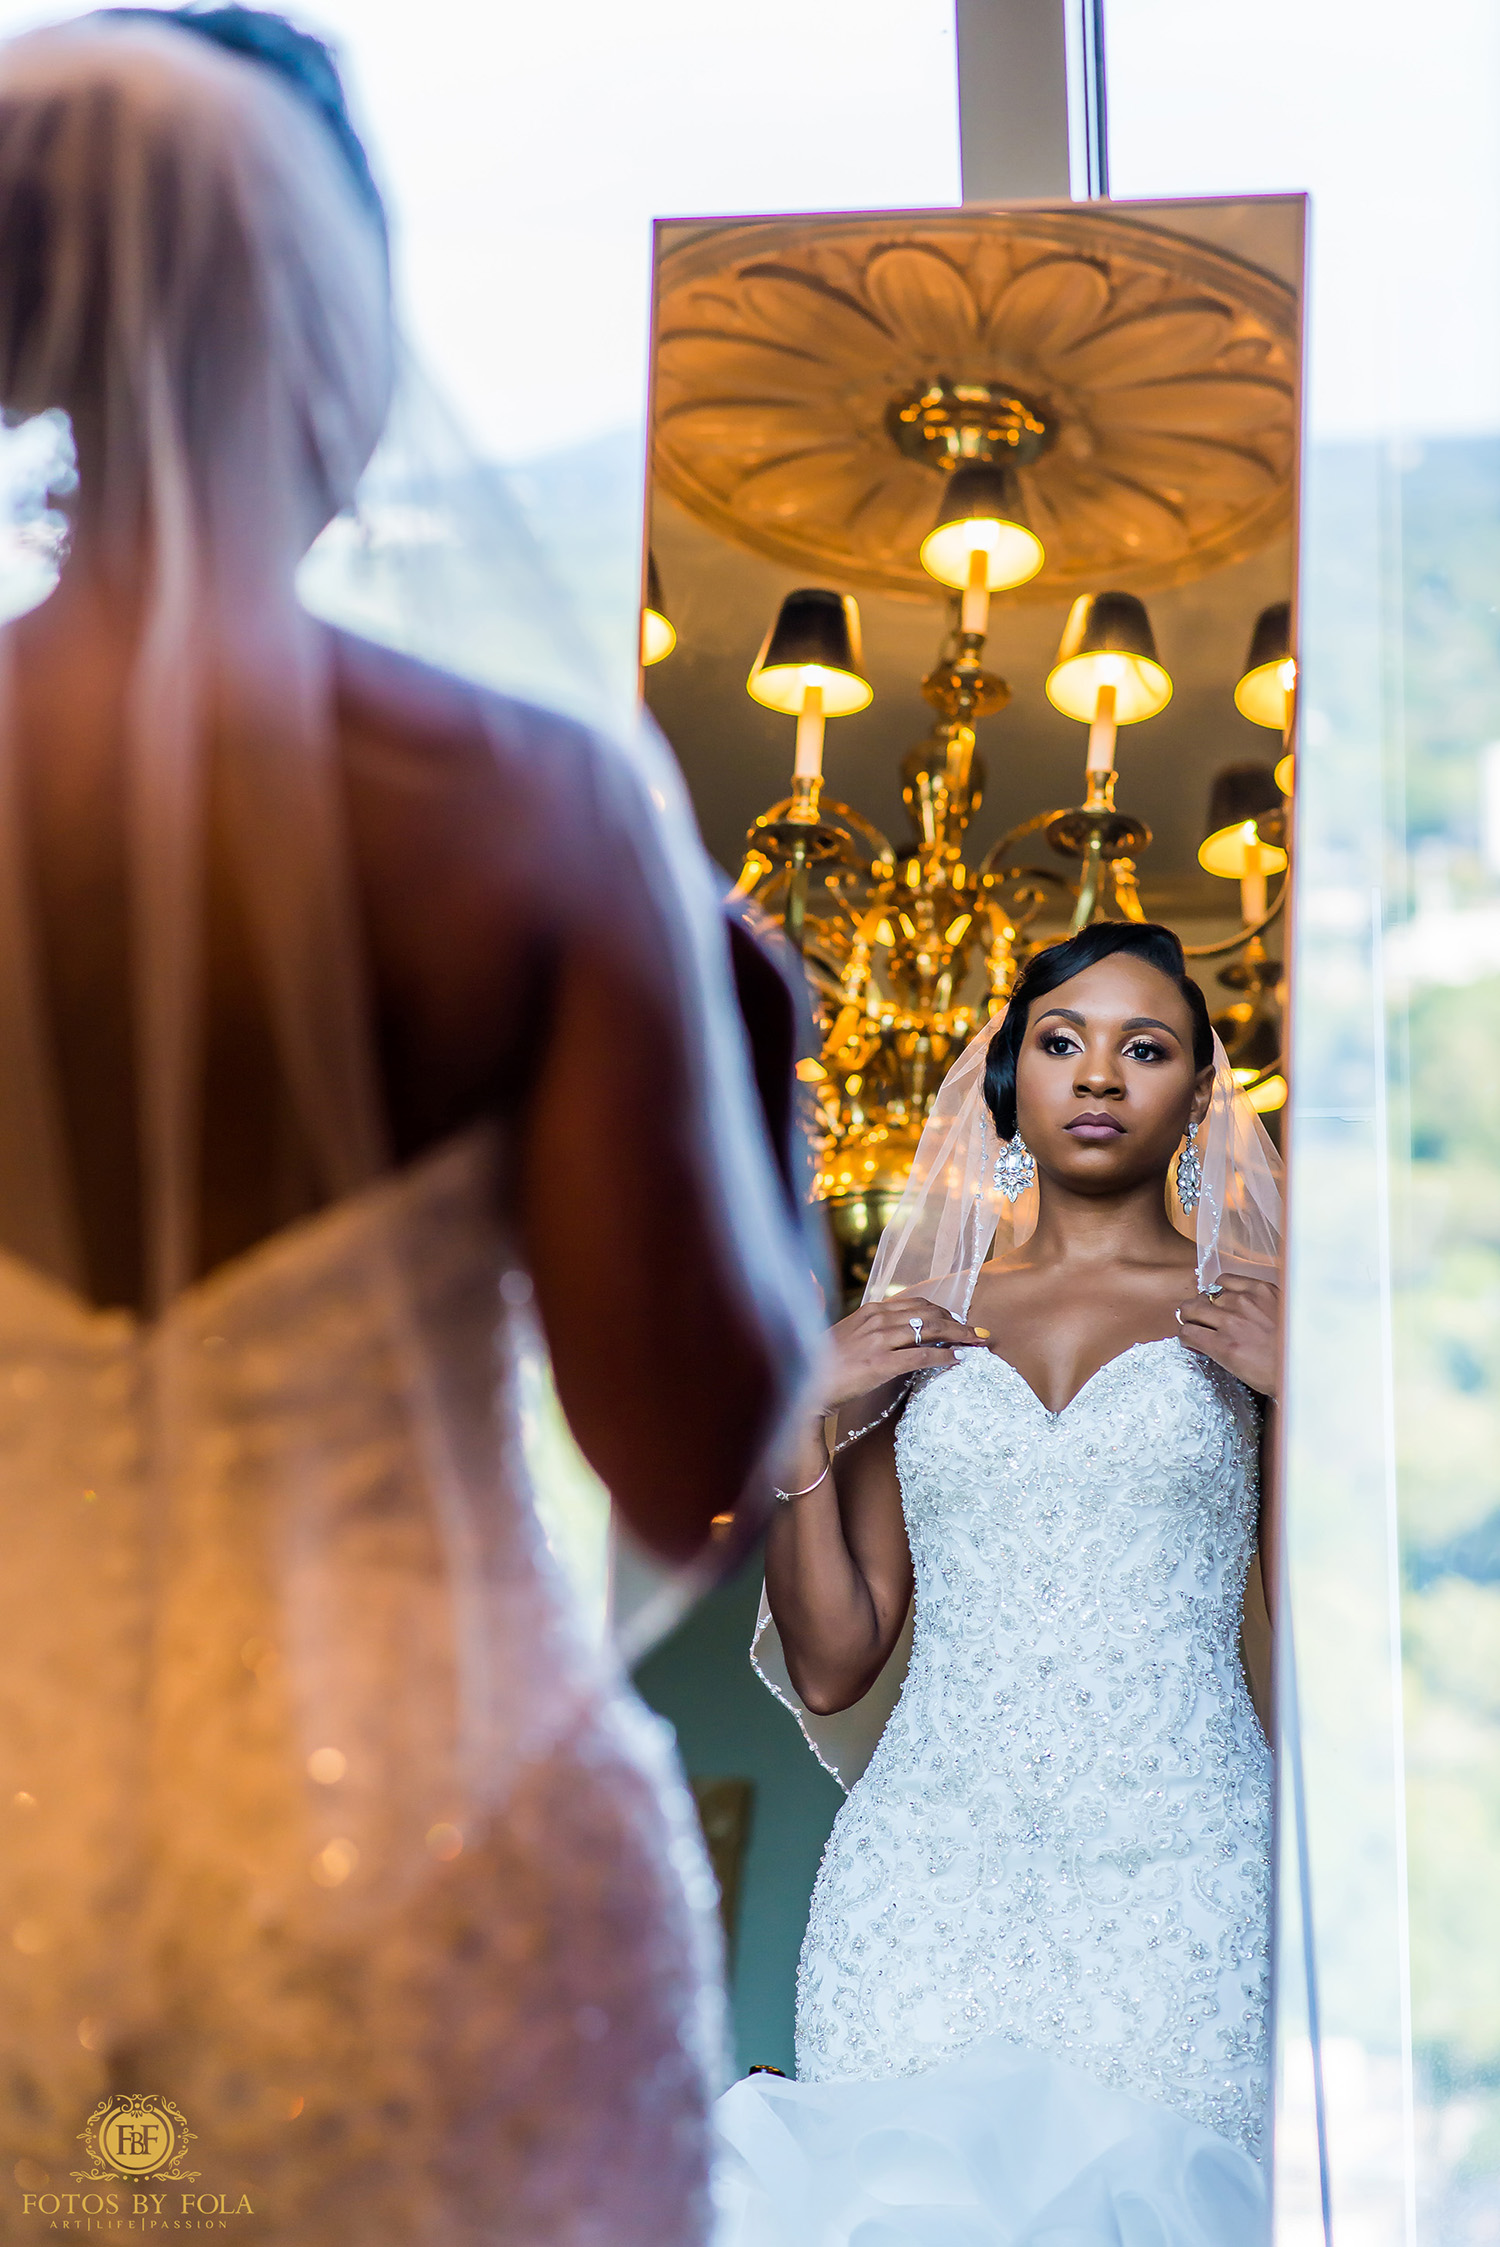 13. Fotos by Fola | Atlanta Wedding Photographer | Peachtree Club Wedding